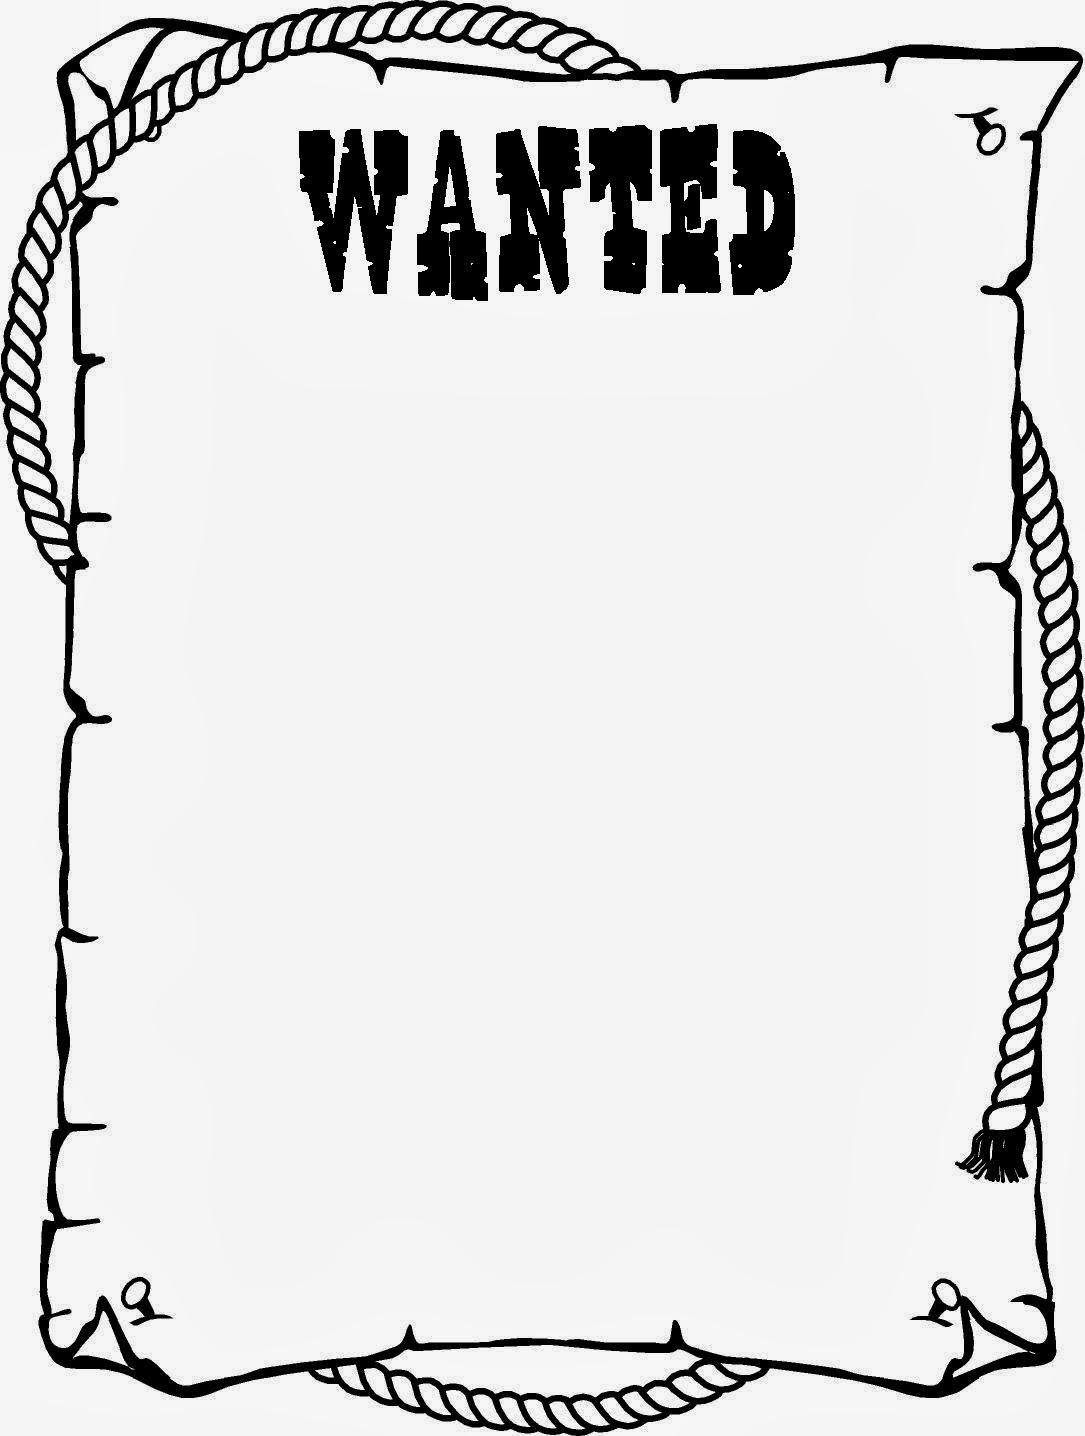 Wanted Poster Black And White Clipart - Clipart Kid